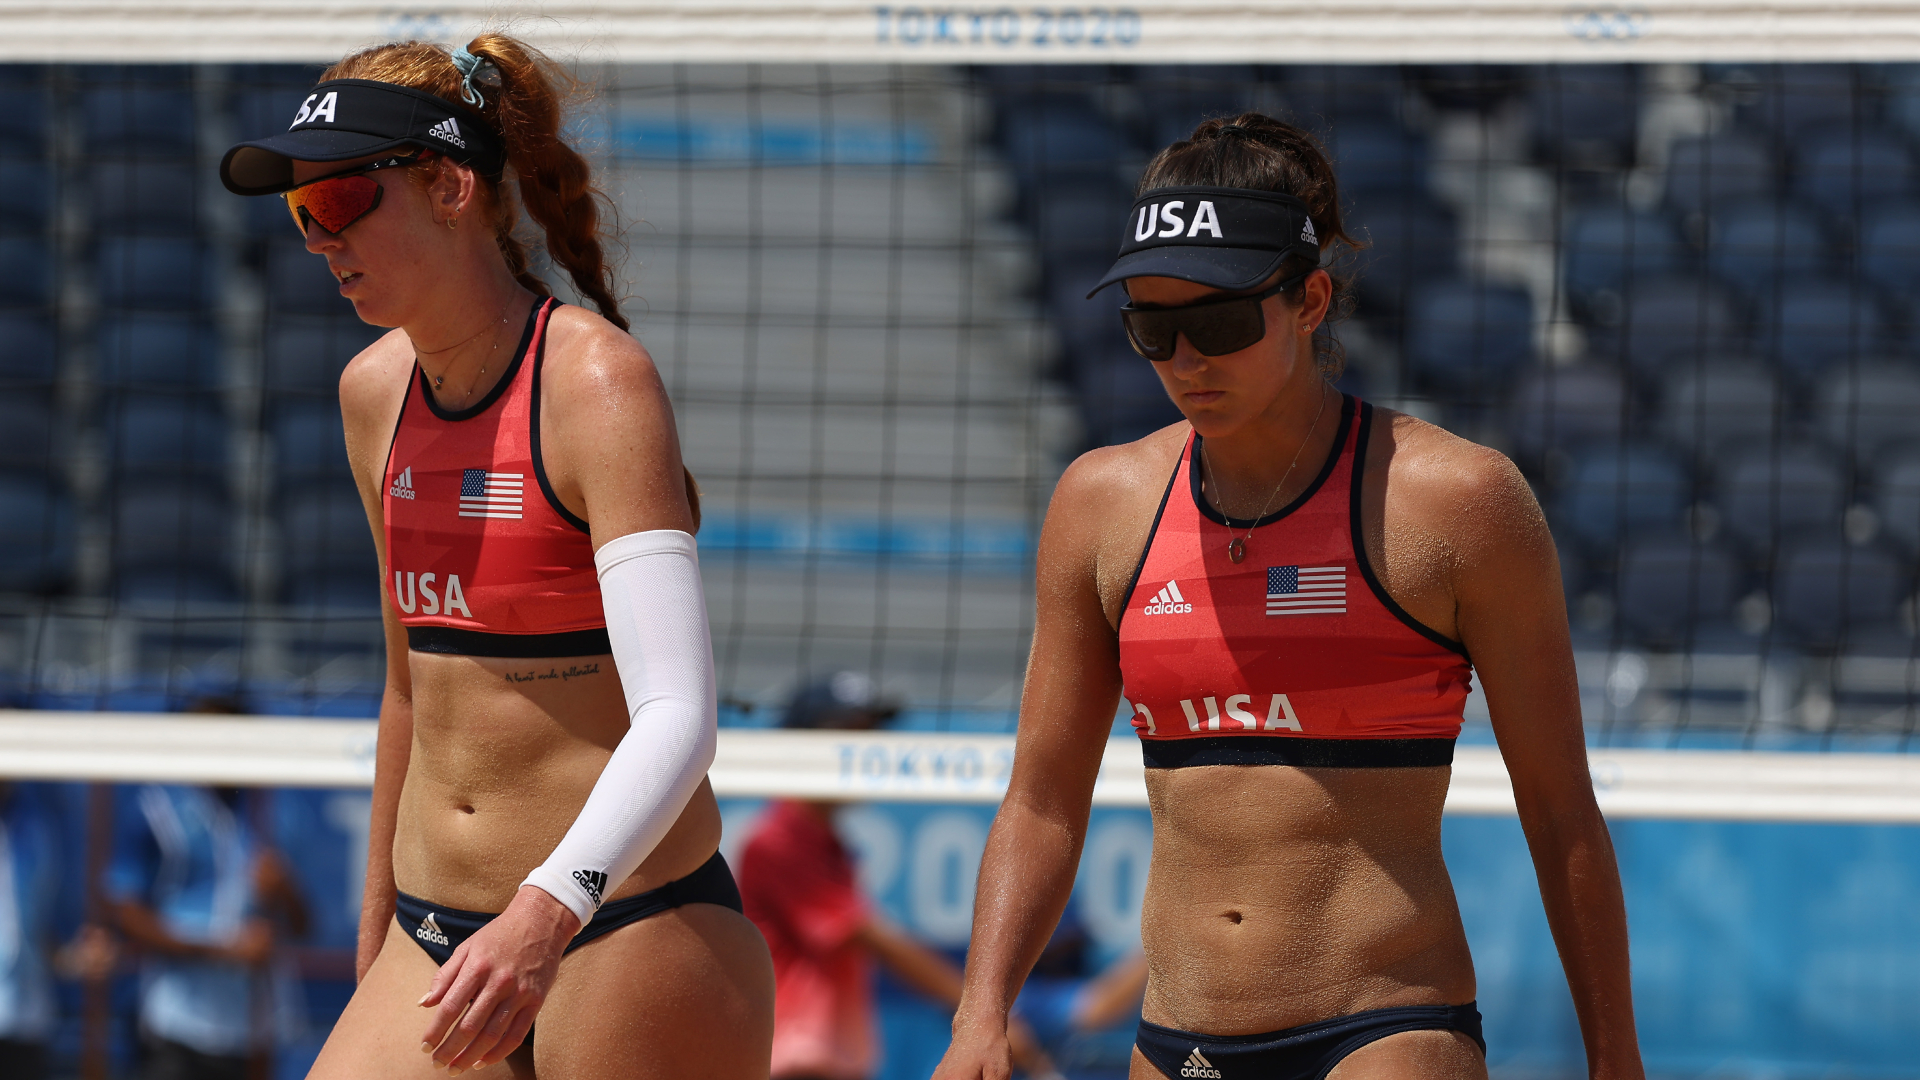 Twitter incensed as USA volleyball suffers controversial loss to Canada following challenge reversal